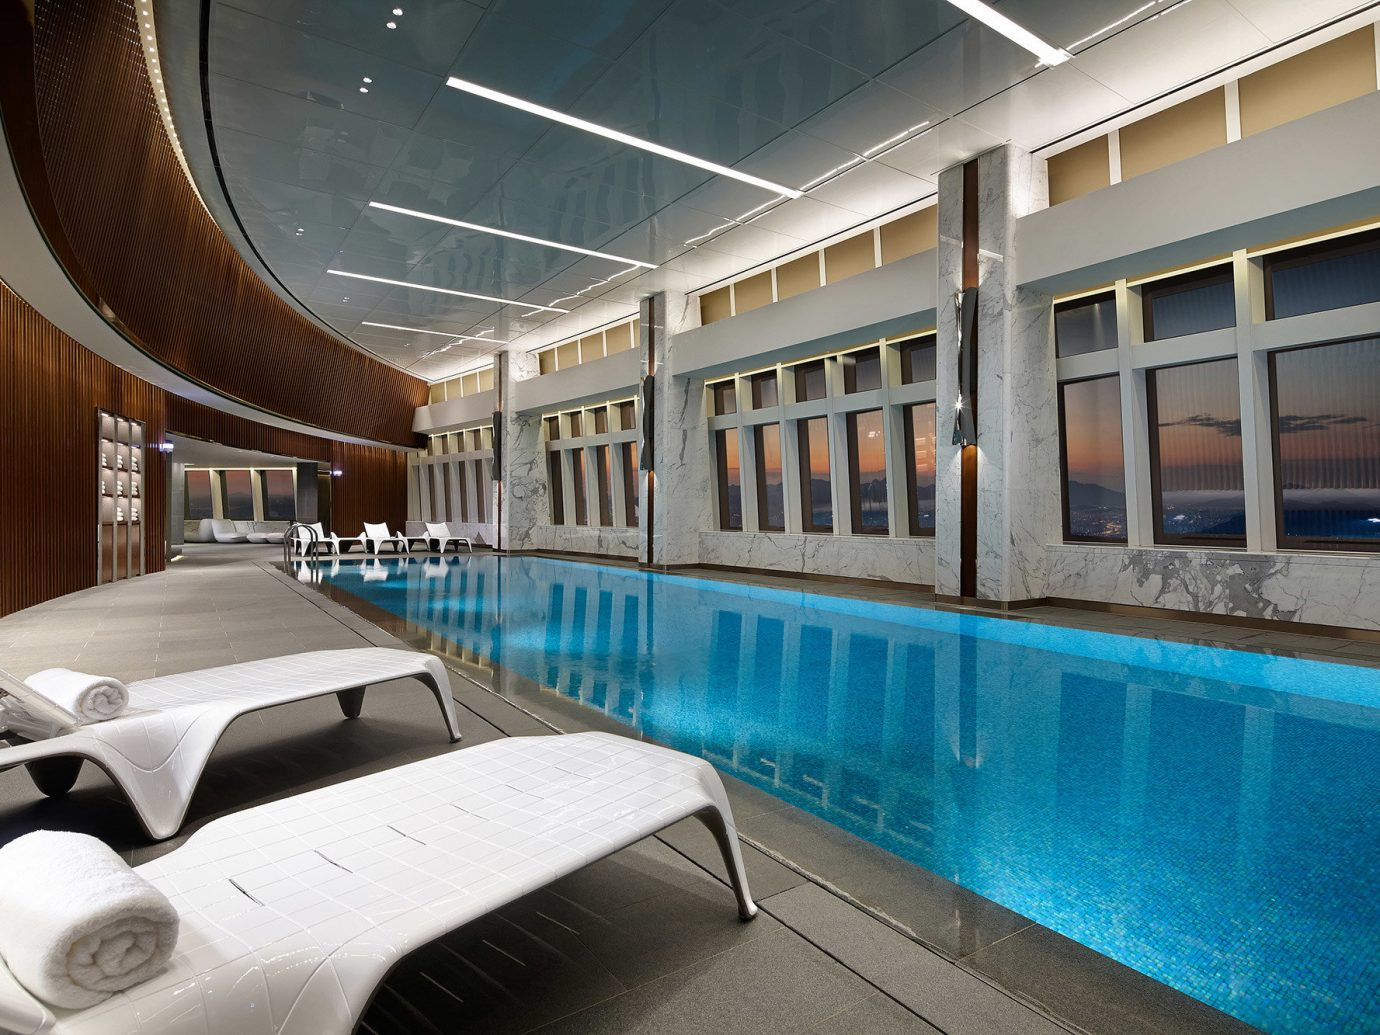 Hotels Luxury Travel indoor floor swimming pool Architecture leisure centre leisure interior design estate window amenity hotel